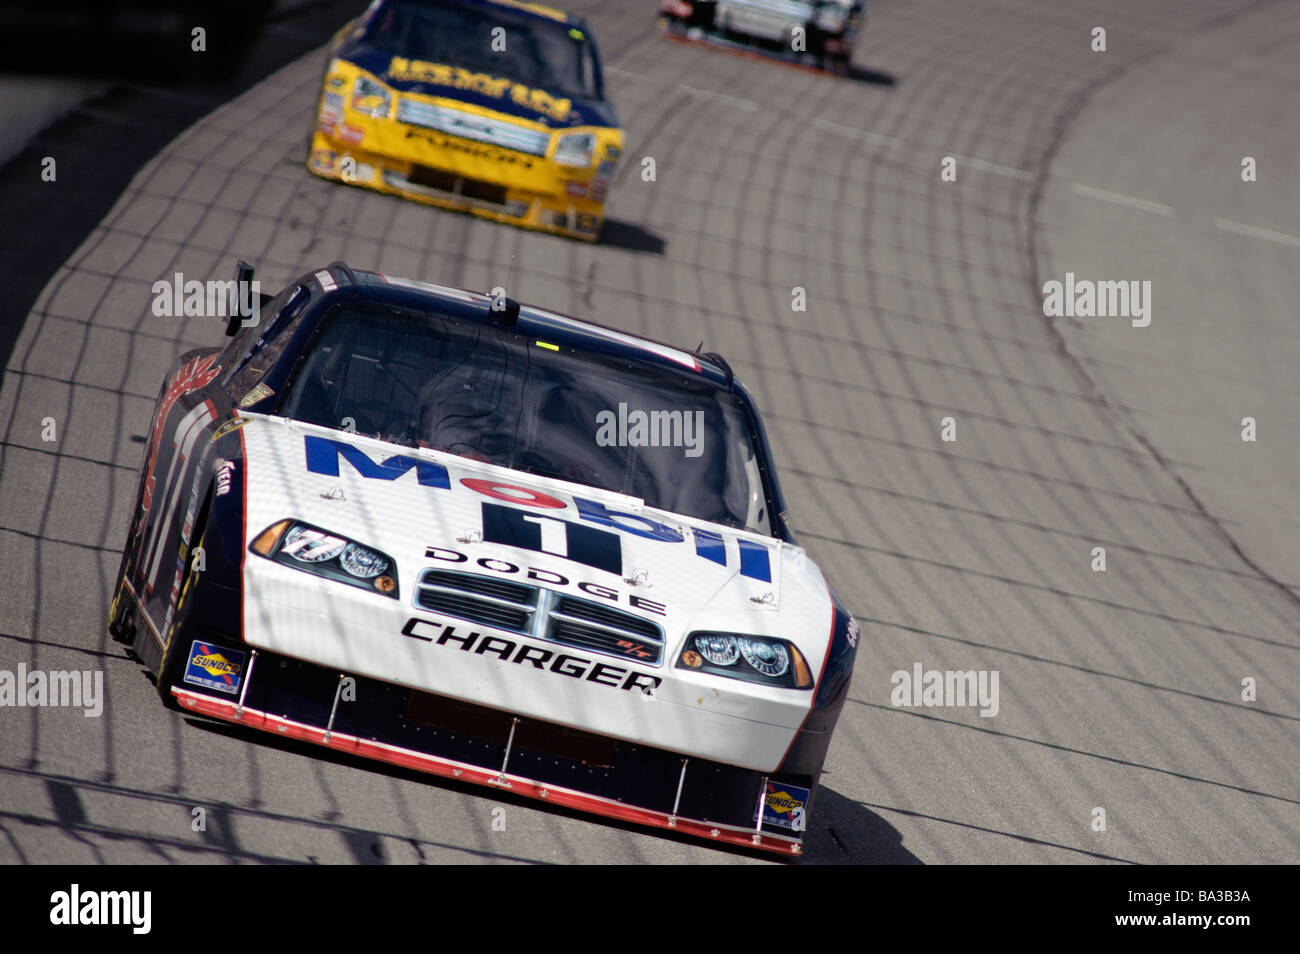 Sam Hornish Jr drives his Chevrolet Impala in the 3M Performance 400 at Michigan International Speedway, 2008. - Stock Image